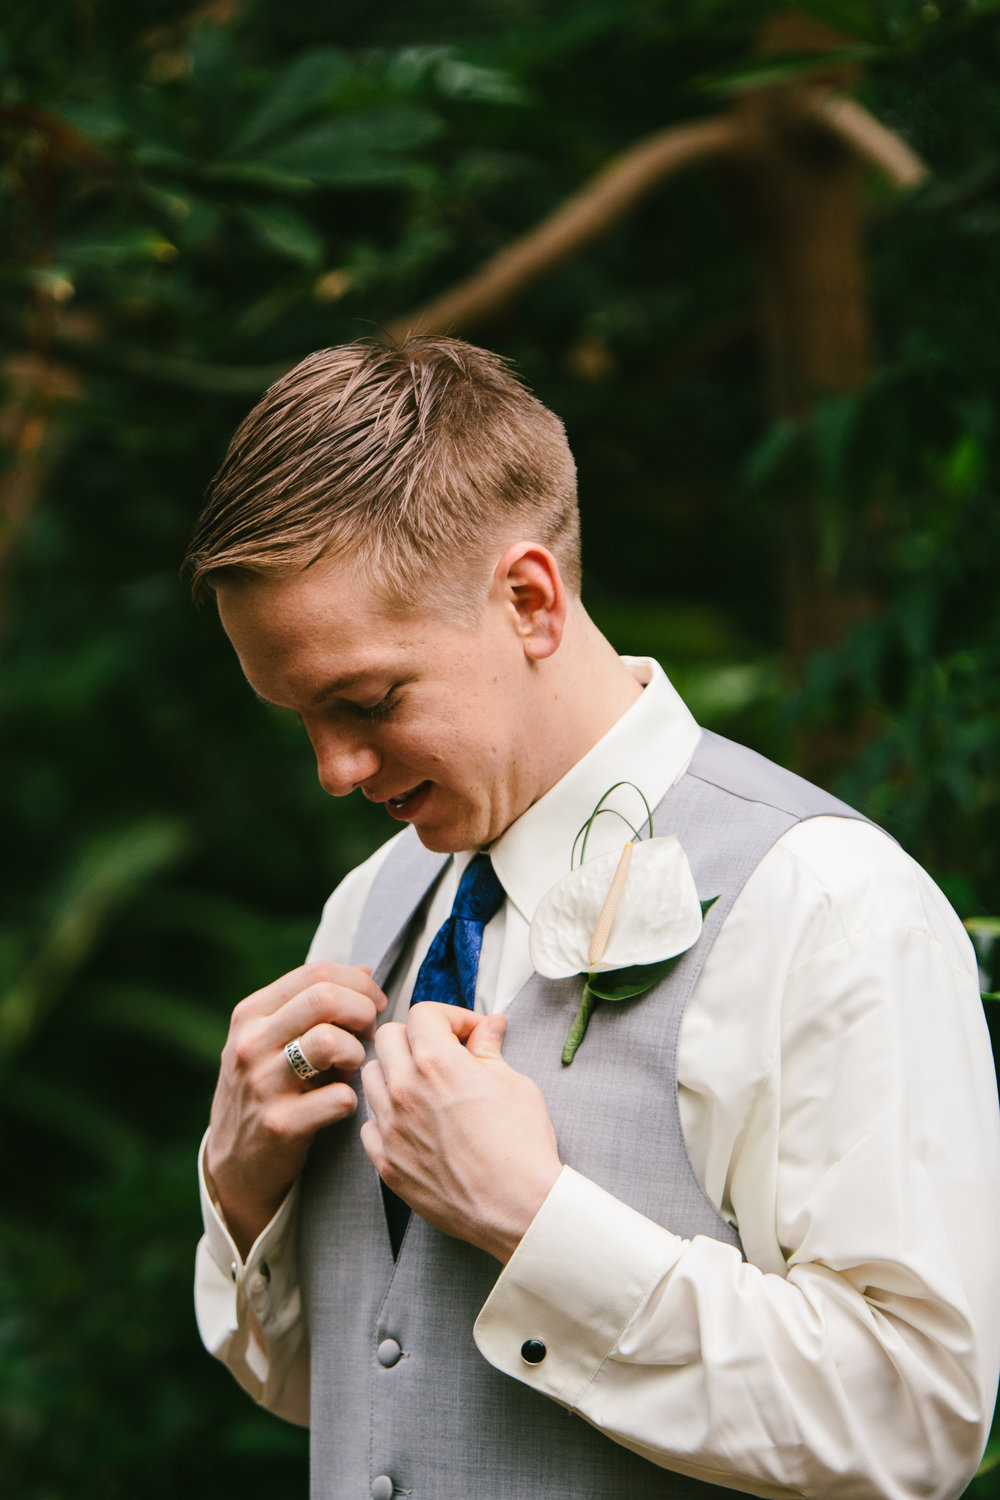 Groom White Boutonnieres - A Botanical Gardens Budget Wedding - From Britt's Eye View Photography